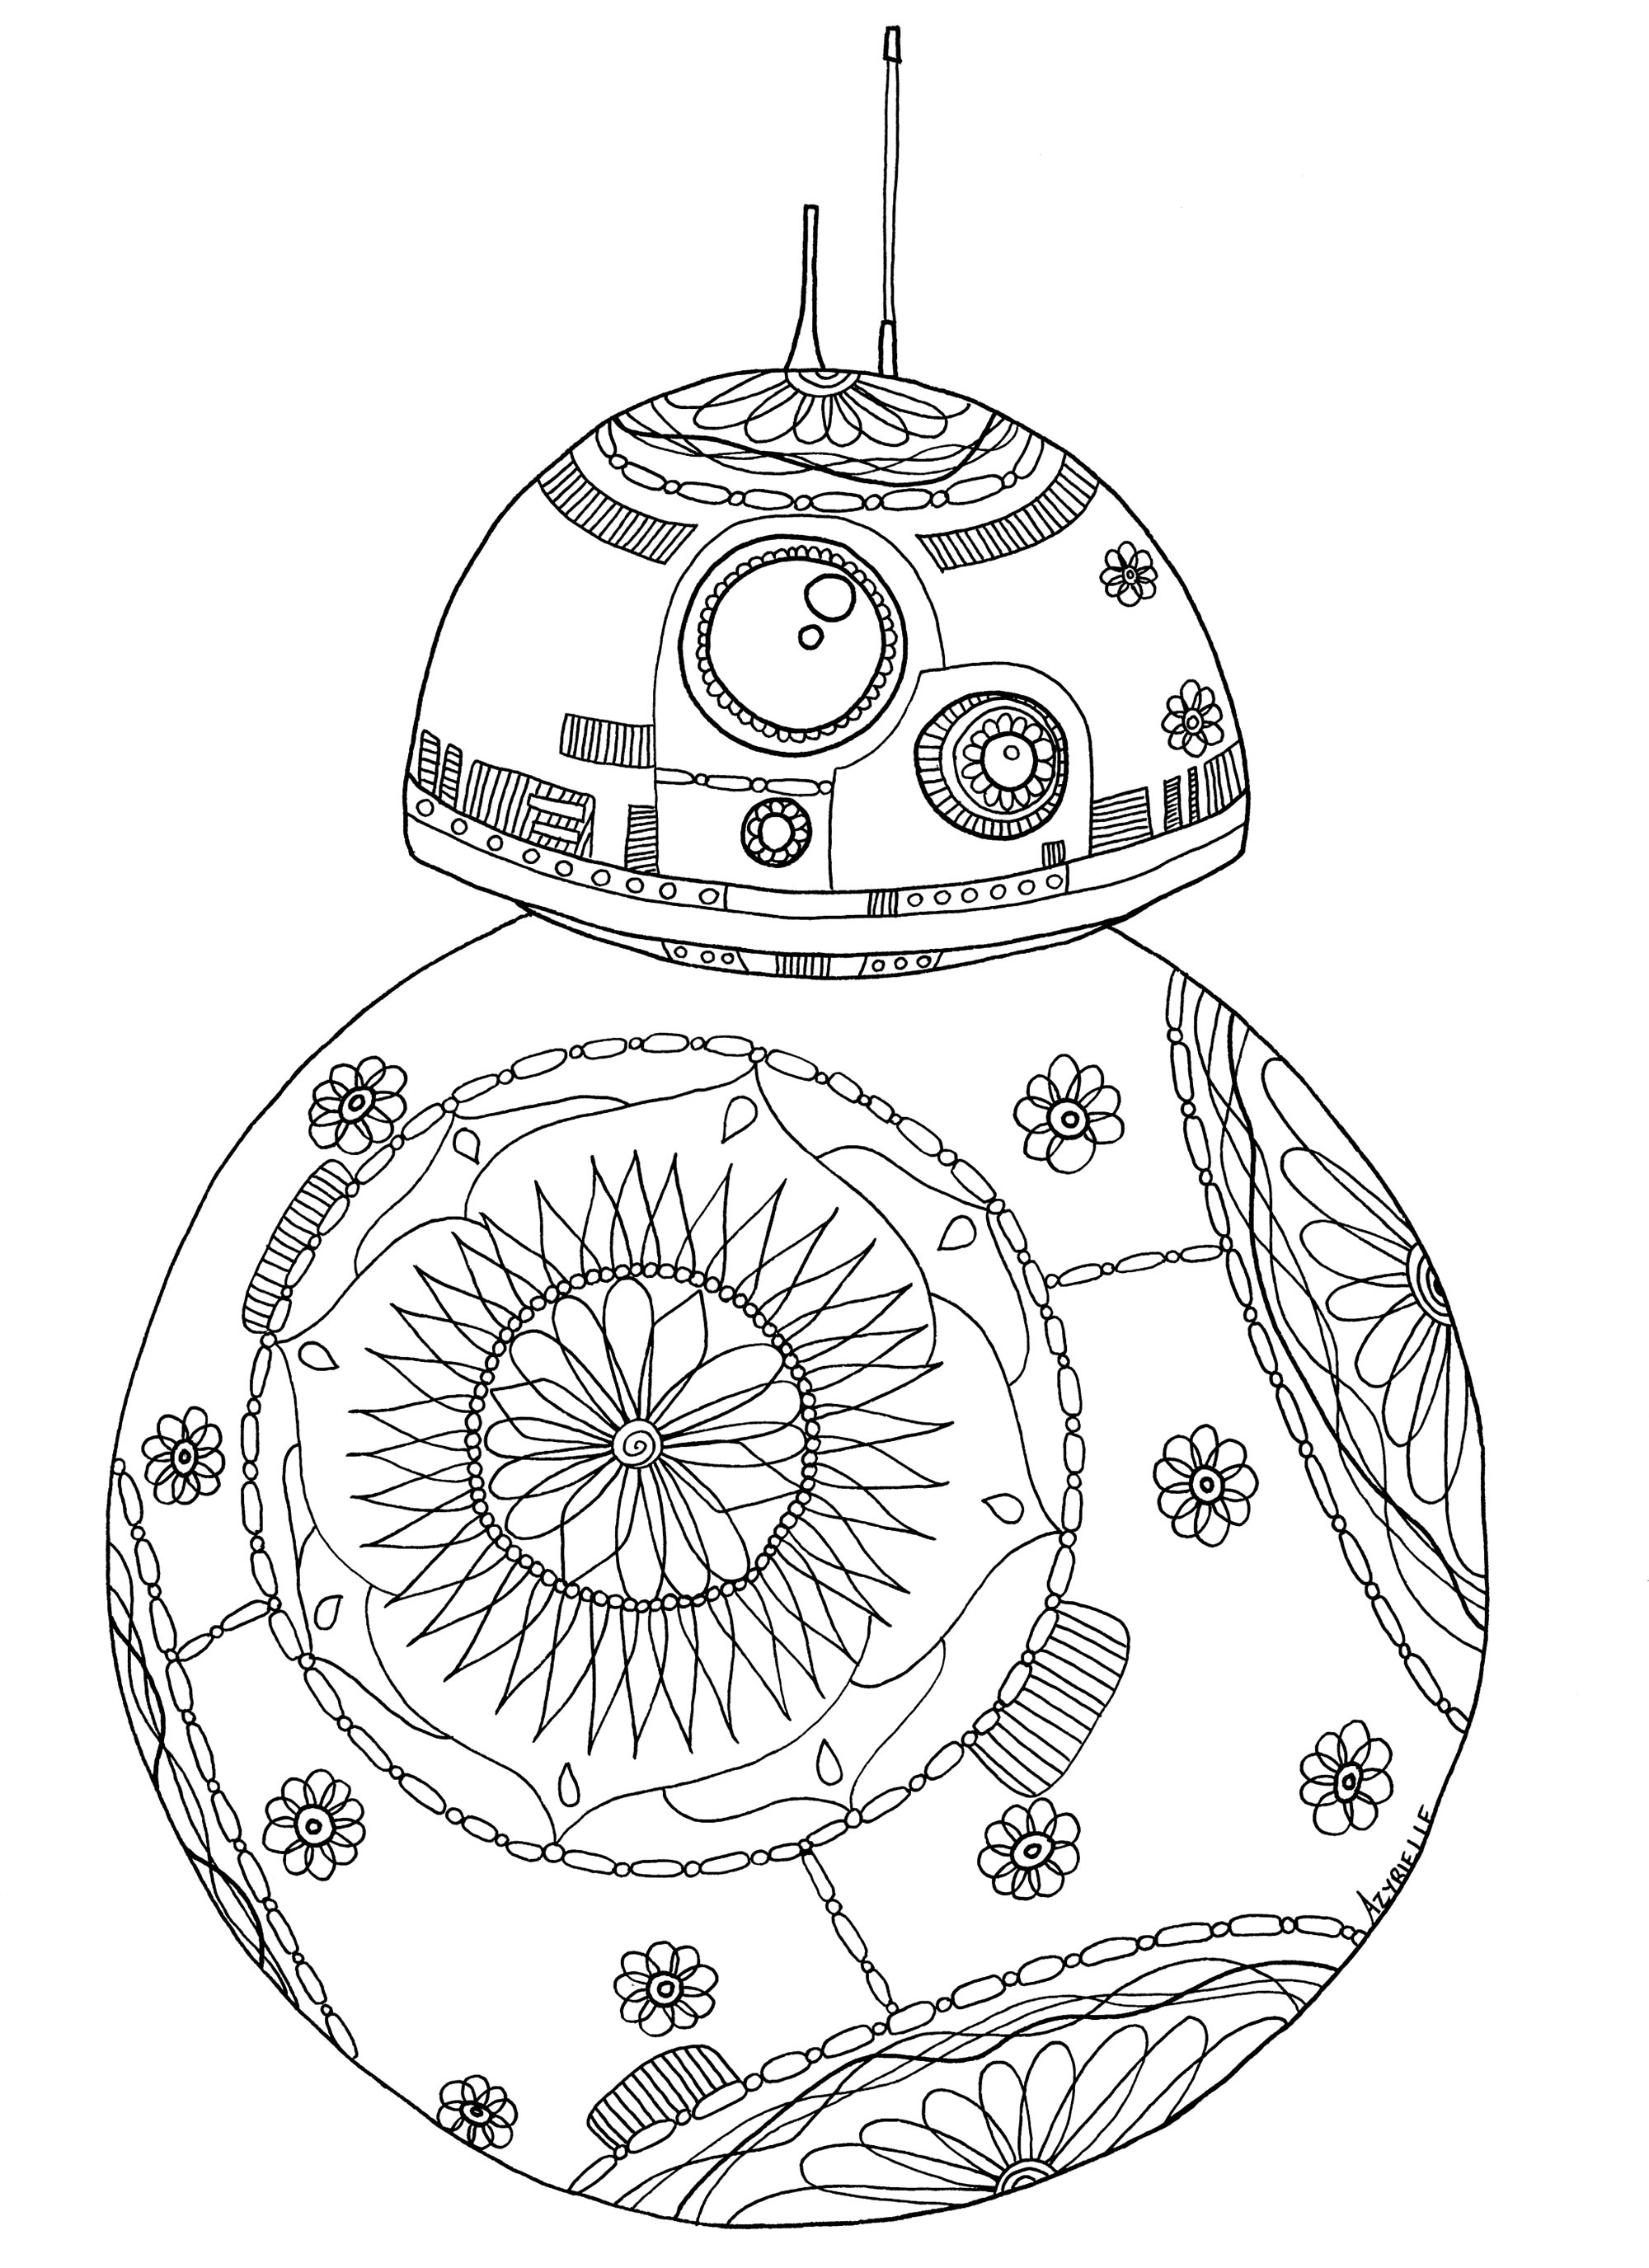 Star wars Coloring Pages for